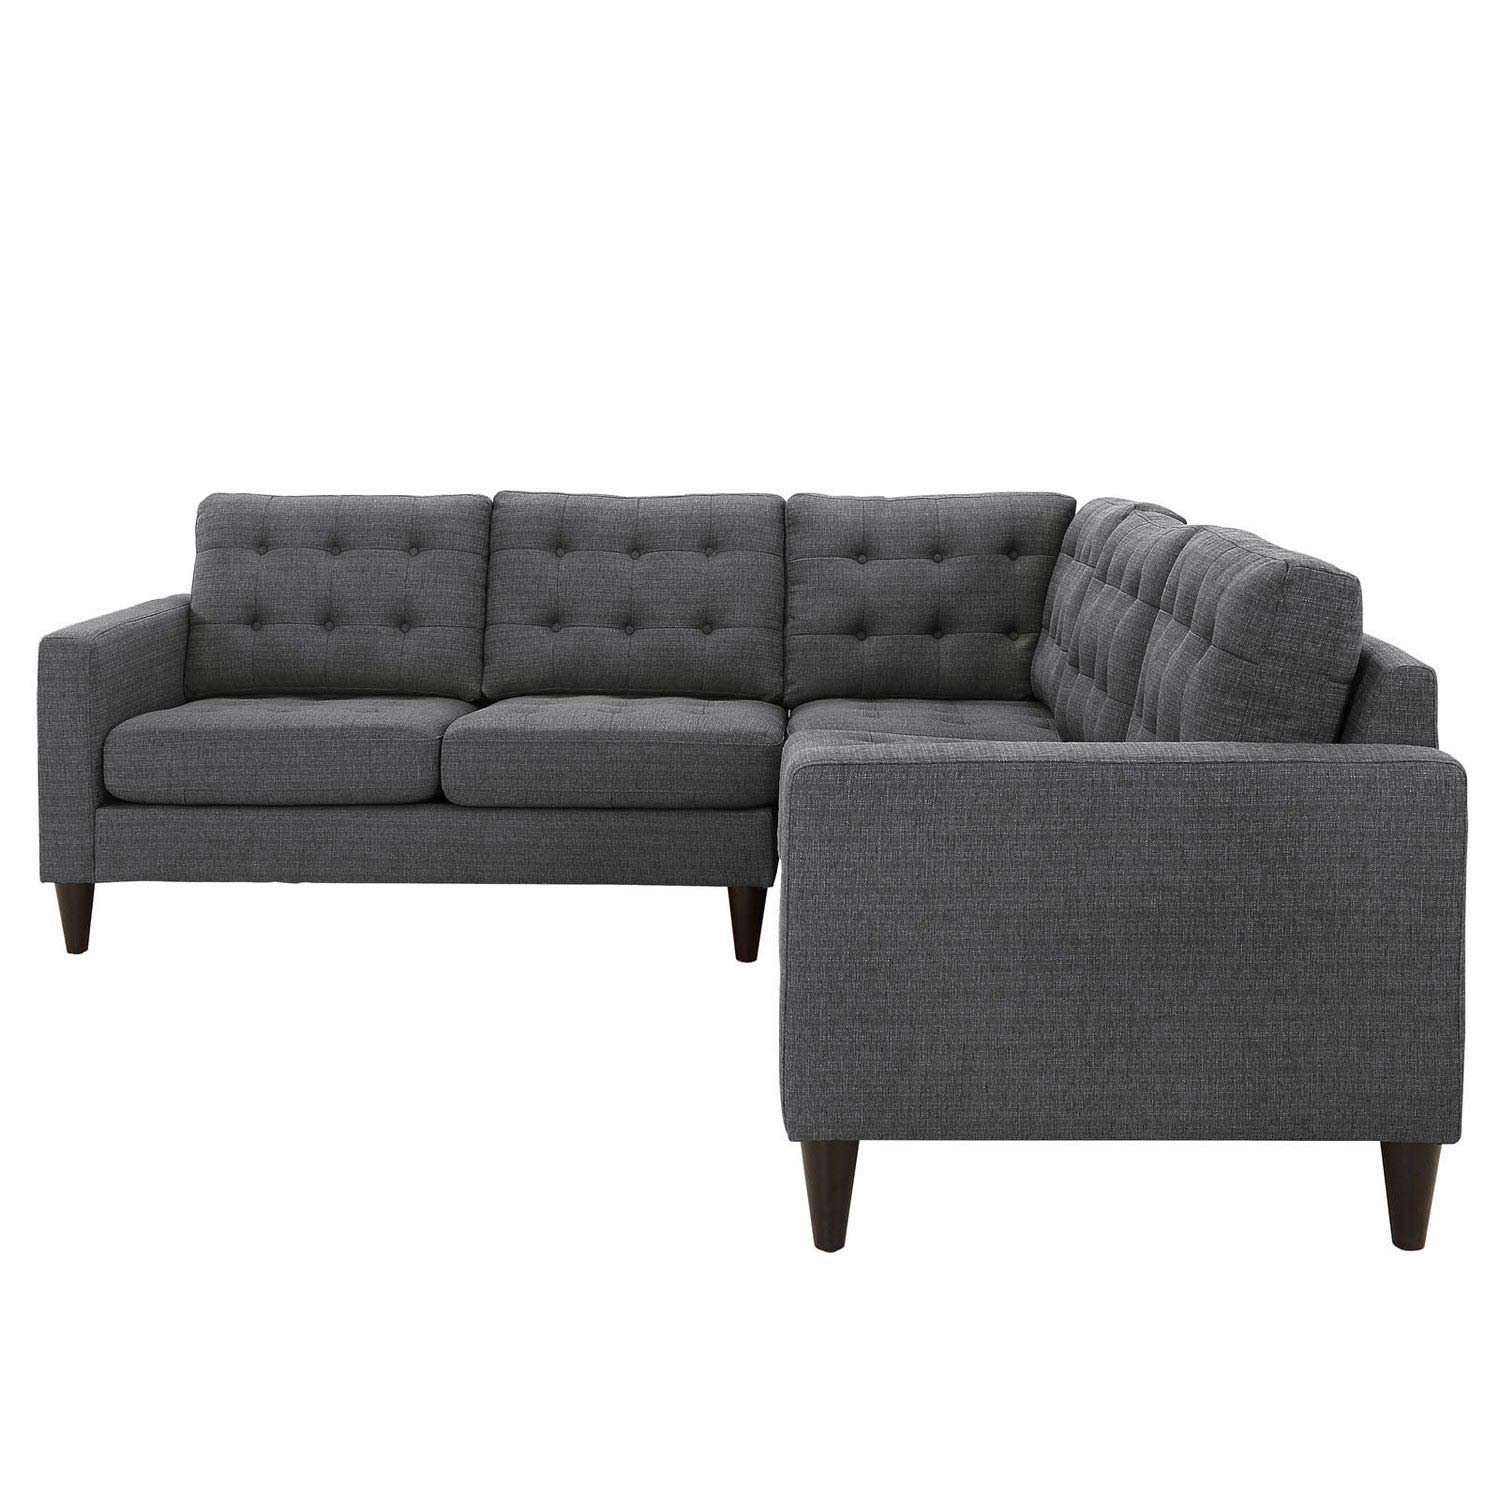 Priscilla EEI-1417DKGY Dark Gray Sectional Sofa  sc 1 st  Wyckes Furniture : dark gray sectional sofa - Sectionals, Sofas & Couches